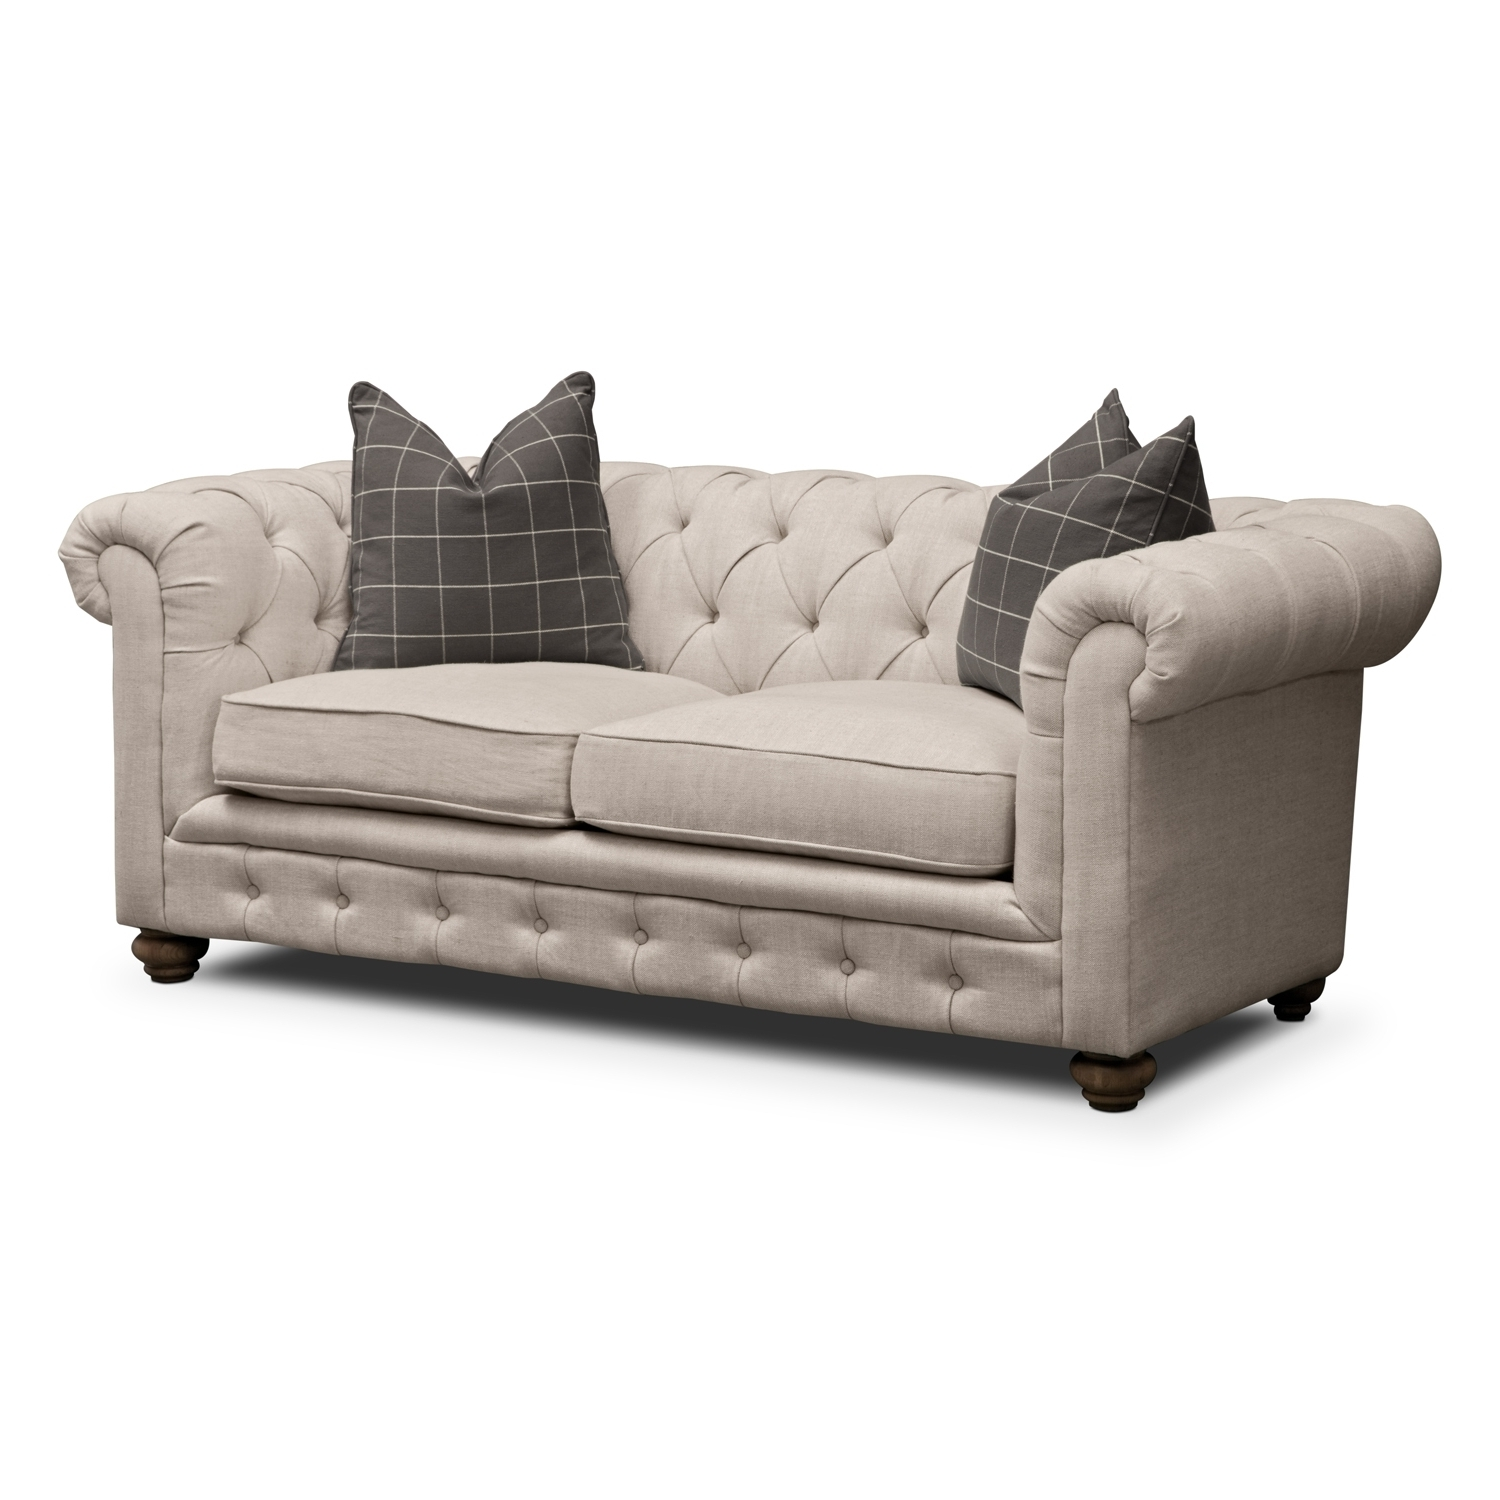 Most Popular Great Apartment Size Sofas 20 On Modern Sofa Ideas With Apartment Pertaining To Apartment Size Sofas (View 10 of 15)